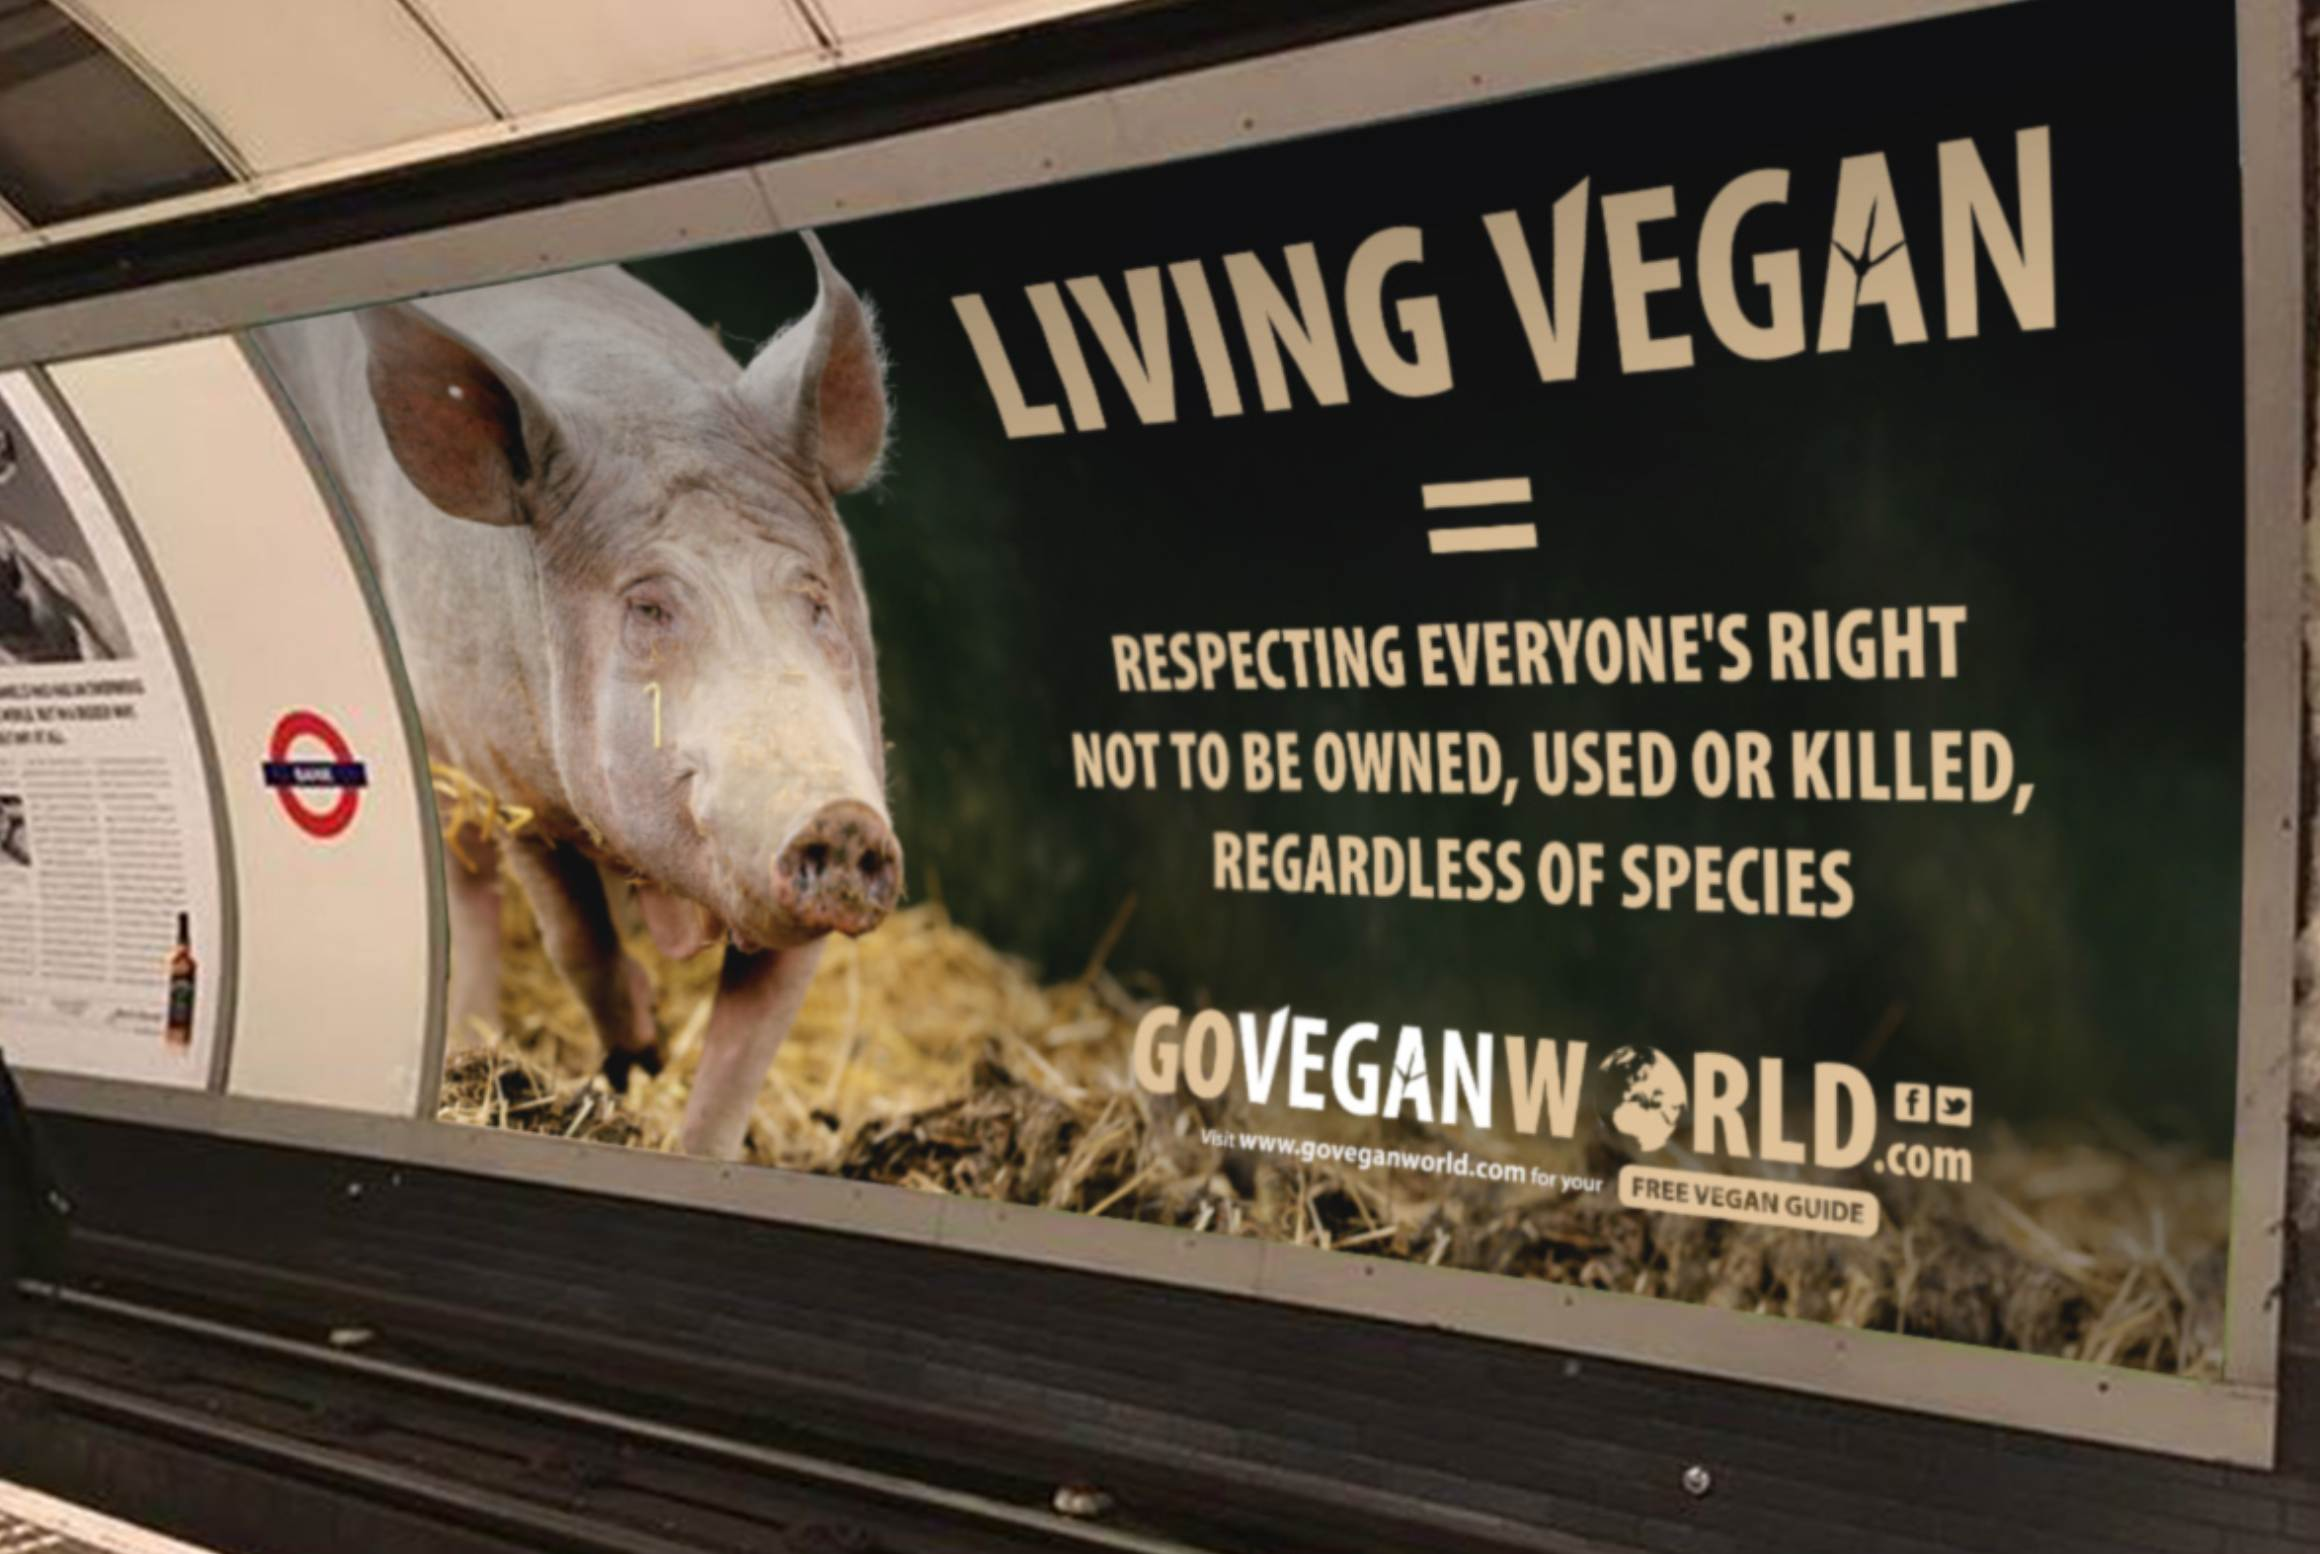 Giant Go Vegan World poster on the tube